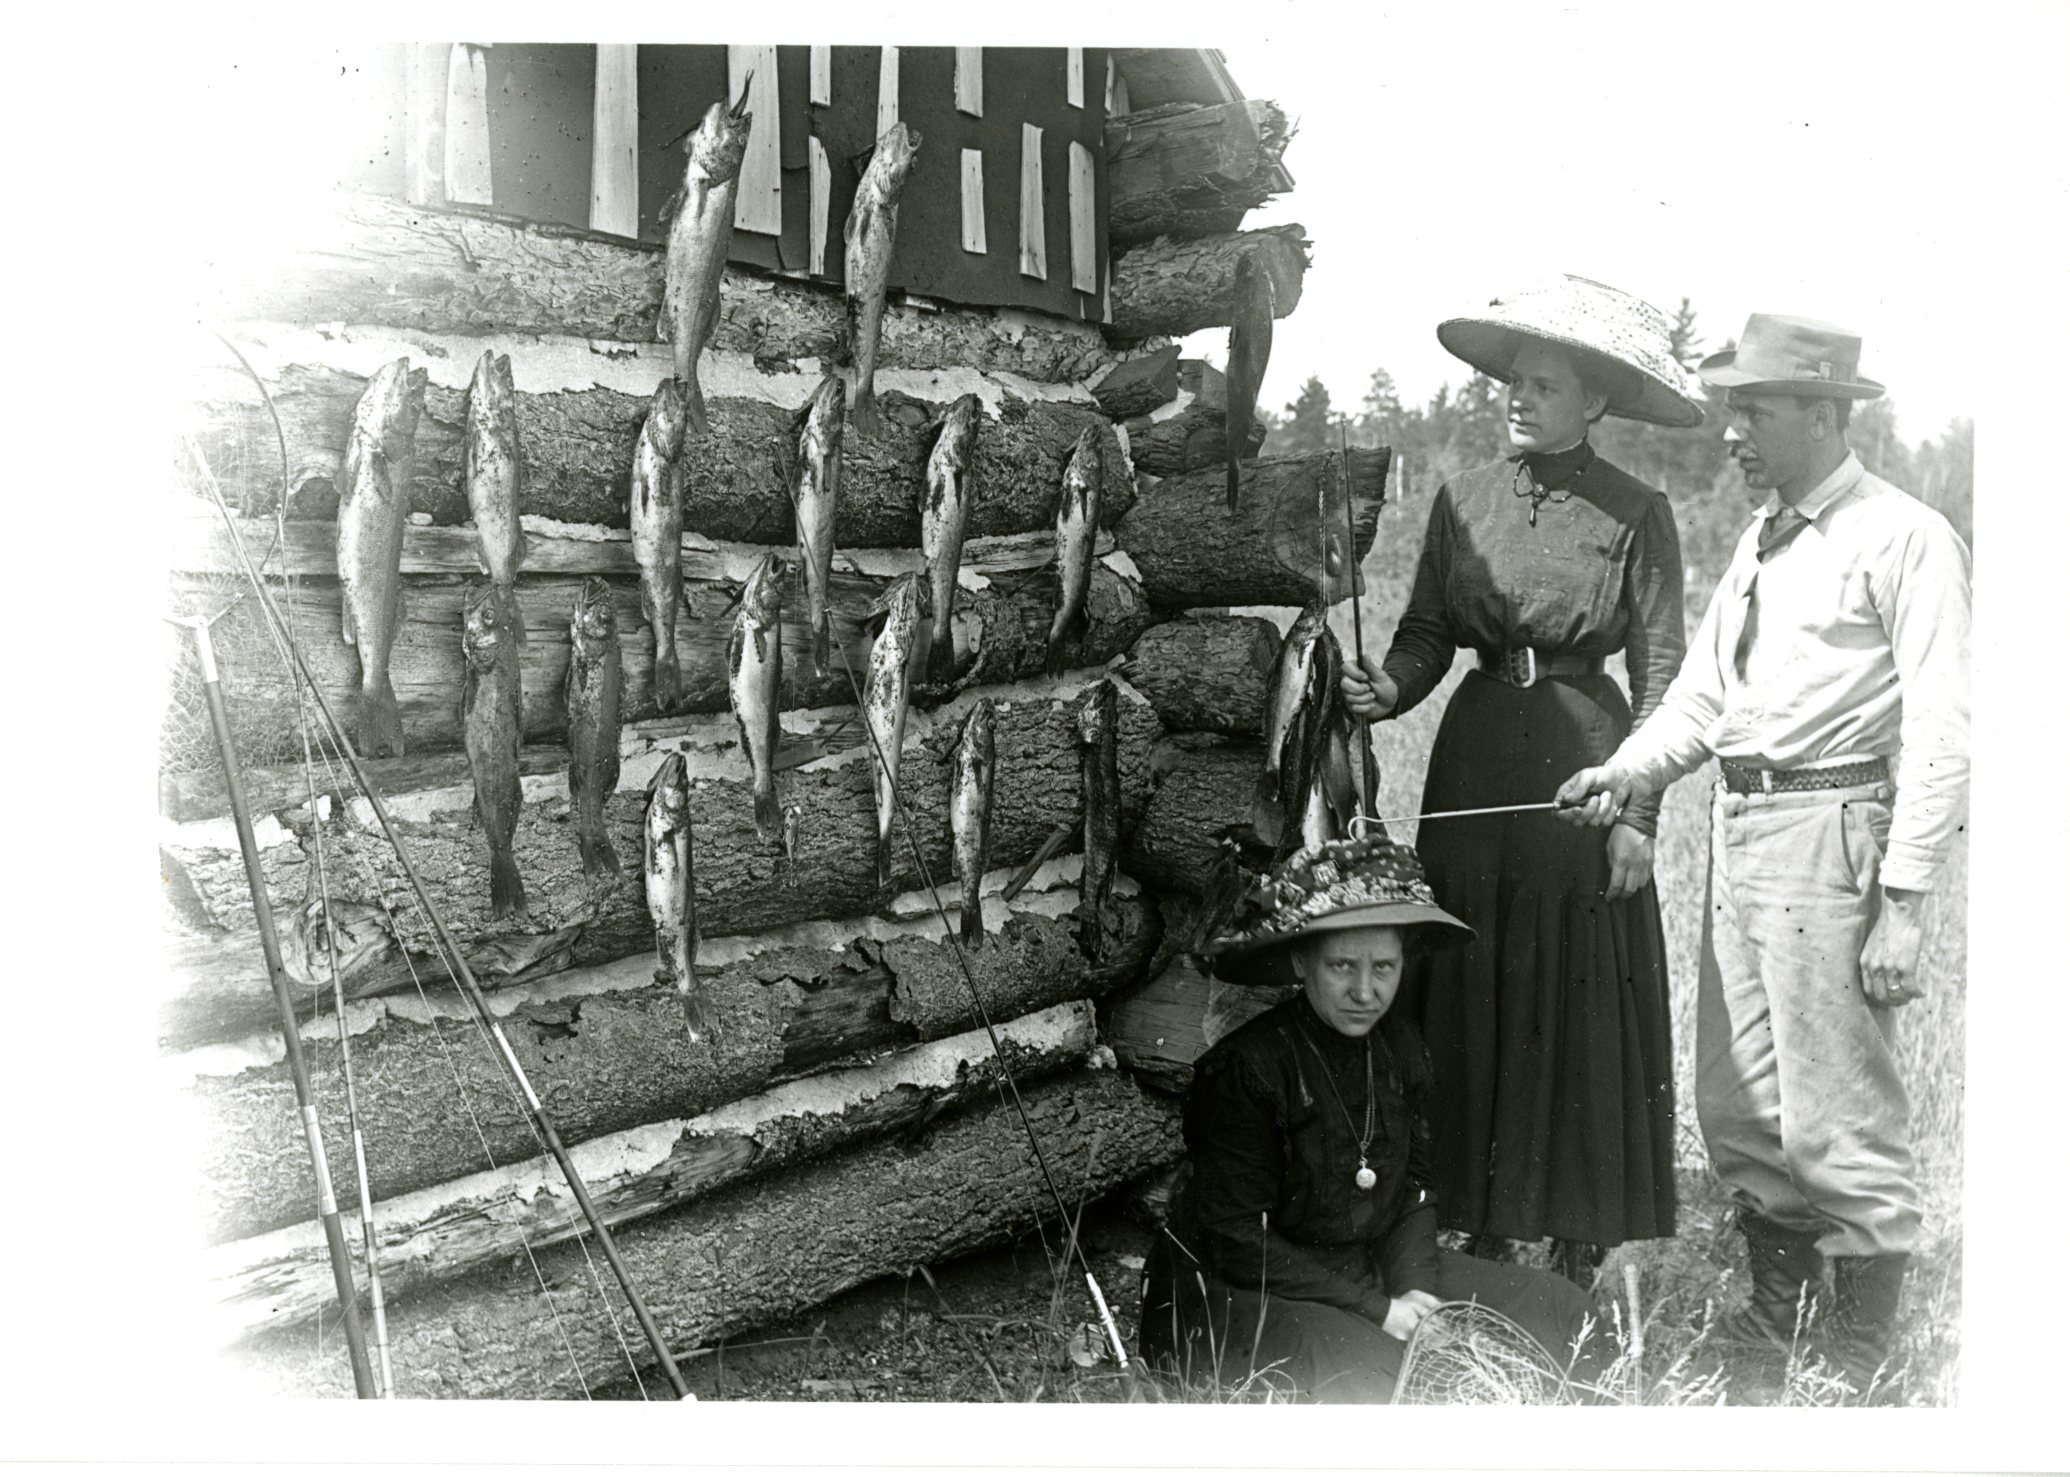 <table class=&quot;lightbox&quot;><tr><td colspan=2 class=&quot;lightbox-title&quot;>Fishing Catch of the Day</td></tr><tr><td colspan=2 class=&quot;lightbox-caption&quot;>Louise Flancher, Elsa Gruettner, and Edwin Flancher stand near their walleye catch before preparing to ship it from Manitowish to Milwaukee in 1905.</td></tr><tr><td colspan=2 class=&quot;lightbox-spacer&quot;></td></tr><tr class=&quot;lightbox-detail&quot;><td class=&quot;cell-title&quot;>Source: </td><td class=&quot;cell-value&quot;>Photograph of the Gruettner Family 1905-1911 Collection, Archives. University of Wisconsin-Milwaukee Libraries. <br /><a href=&quot;http://digicoll.library.wisc.edu/cgi/f/findaid/findaid-idx?location=wimiugma;c=wiarchives;cc=wiarchives;q1=photographs;rgn=main;view=text;didno=uw-mil-uwmmss0032.&quot; target=&quot;_blank&quot;>University of Wisconsin-Milwaukee Libraries</a></td></tr><tr class=&quot;filler-row&quot;><td colspan=2>&nbsp;</td></tr></table>